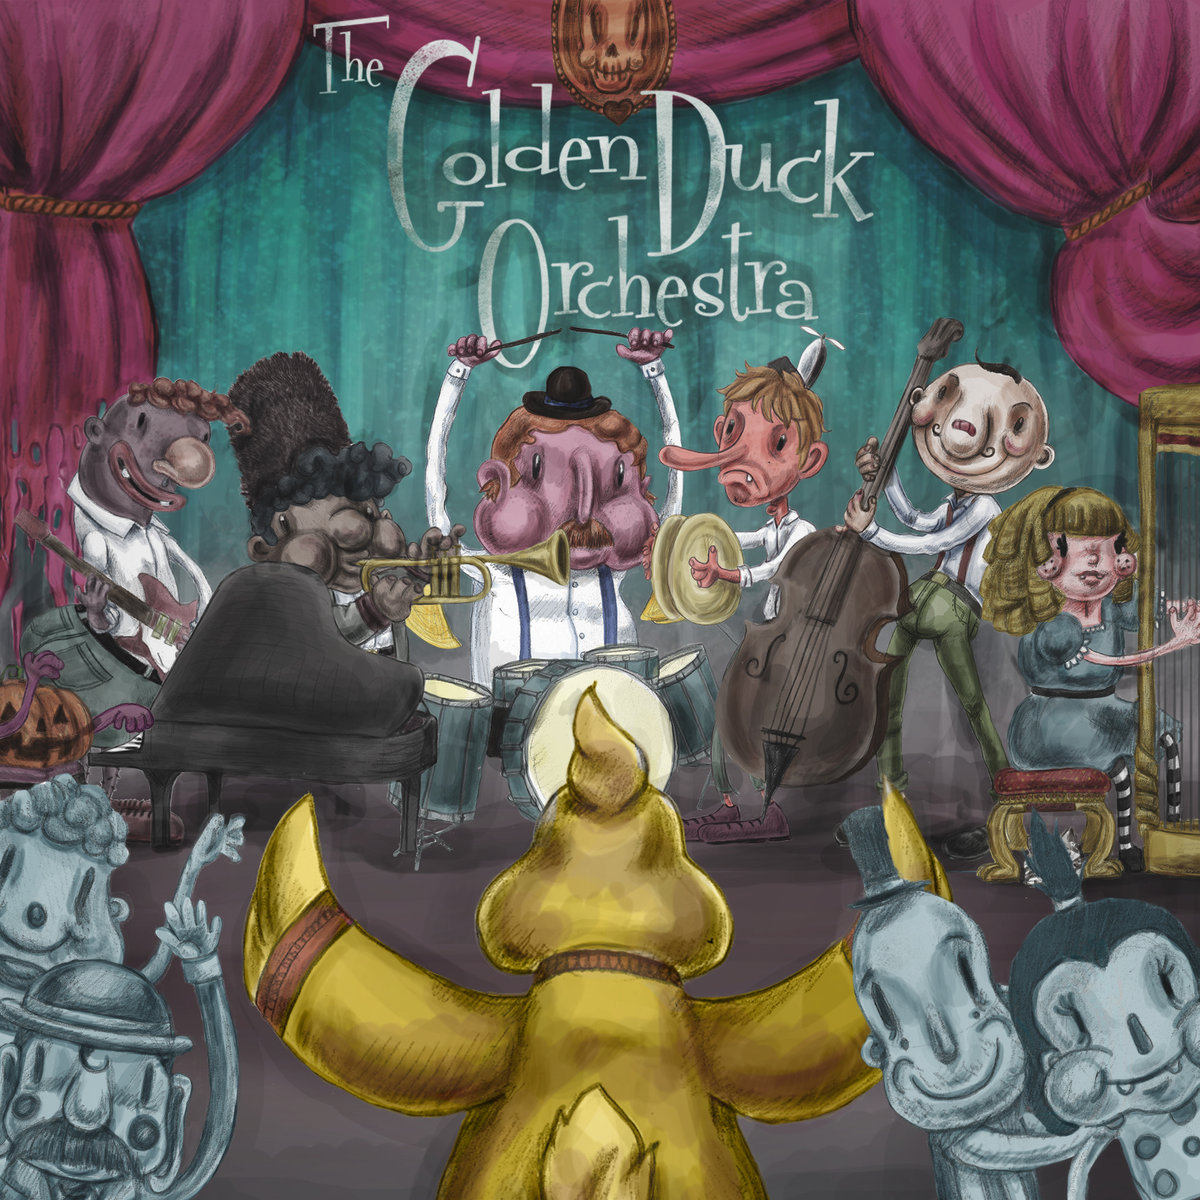 Golden Duck Orchestra - Dynamite @ 'Golden Duck Orchestra' album (alternative, brazilian music)